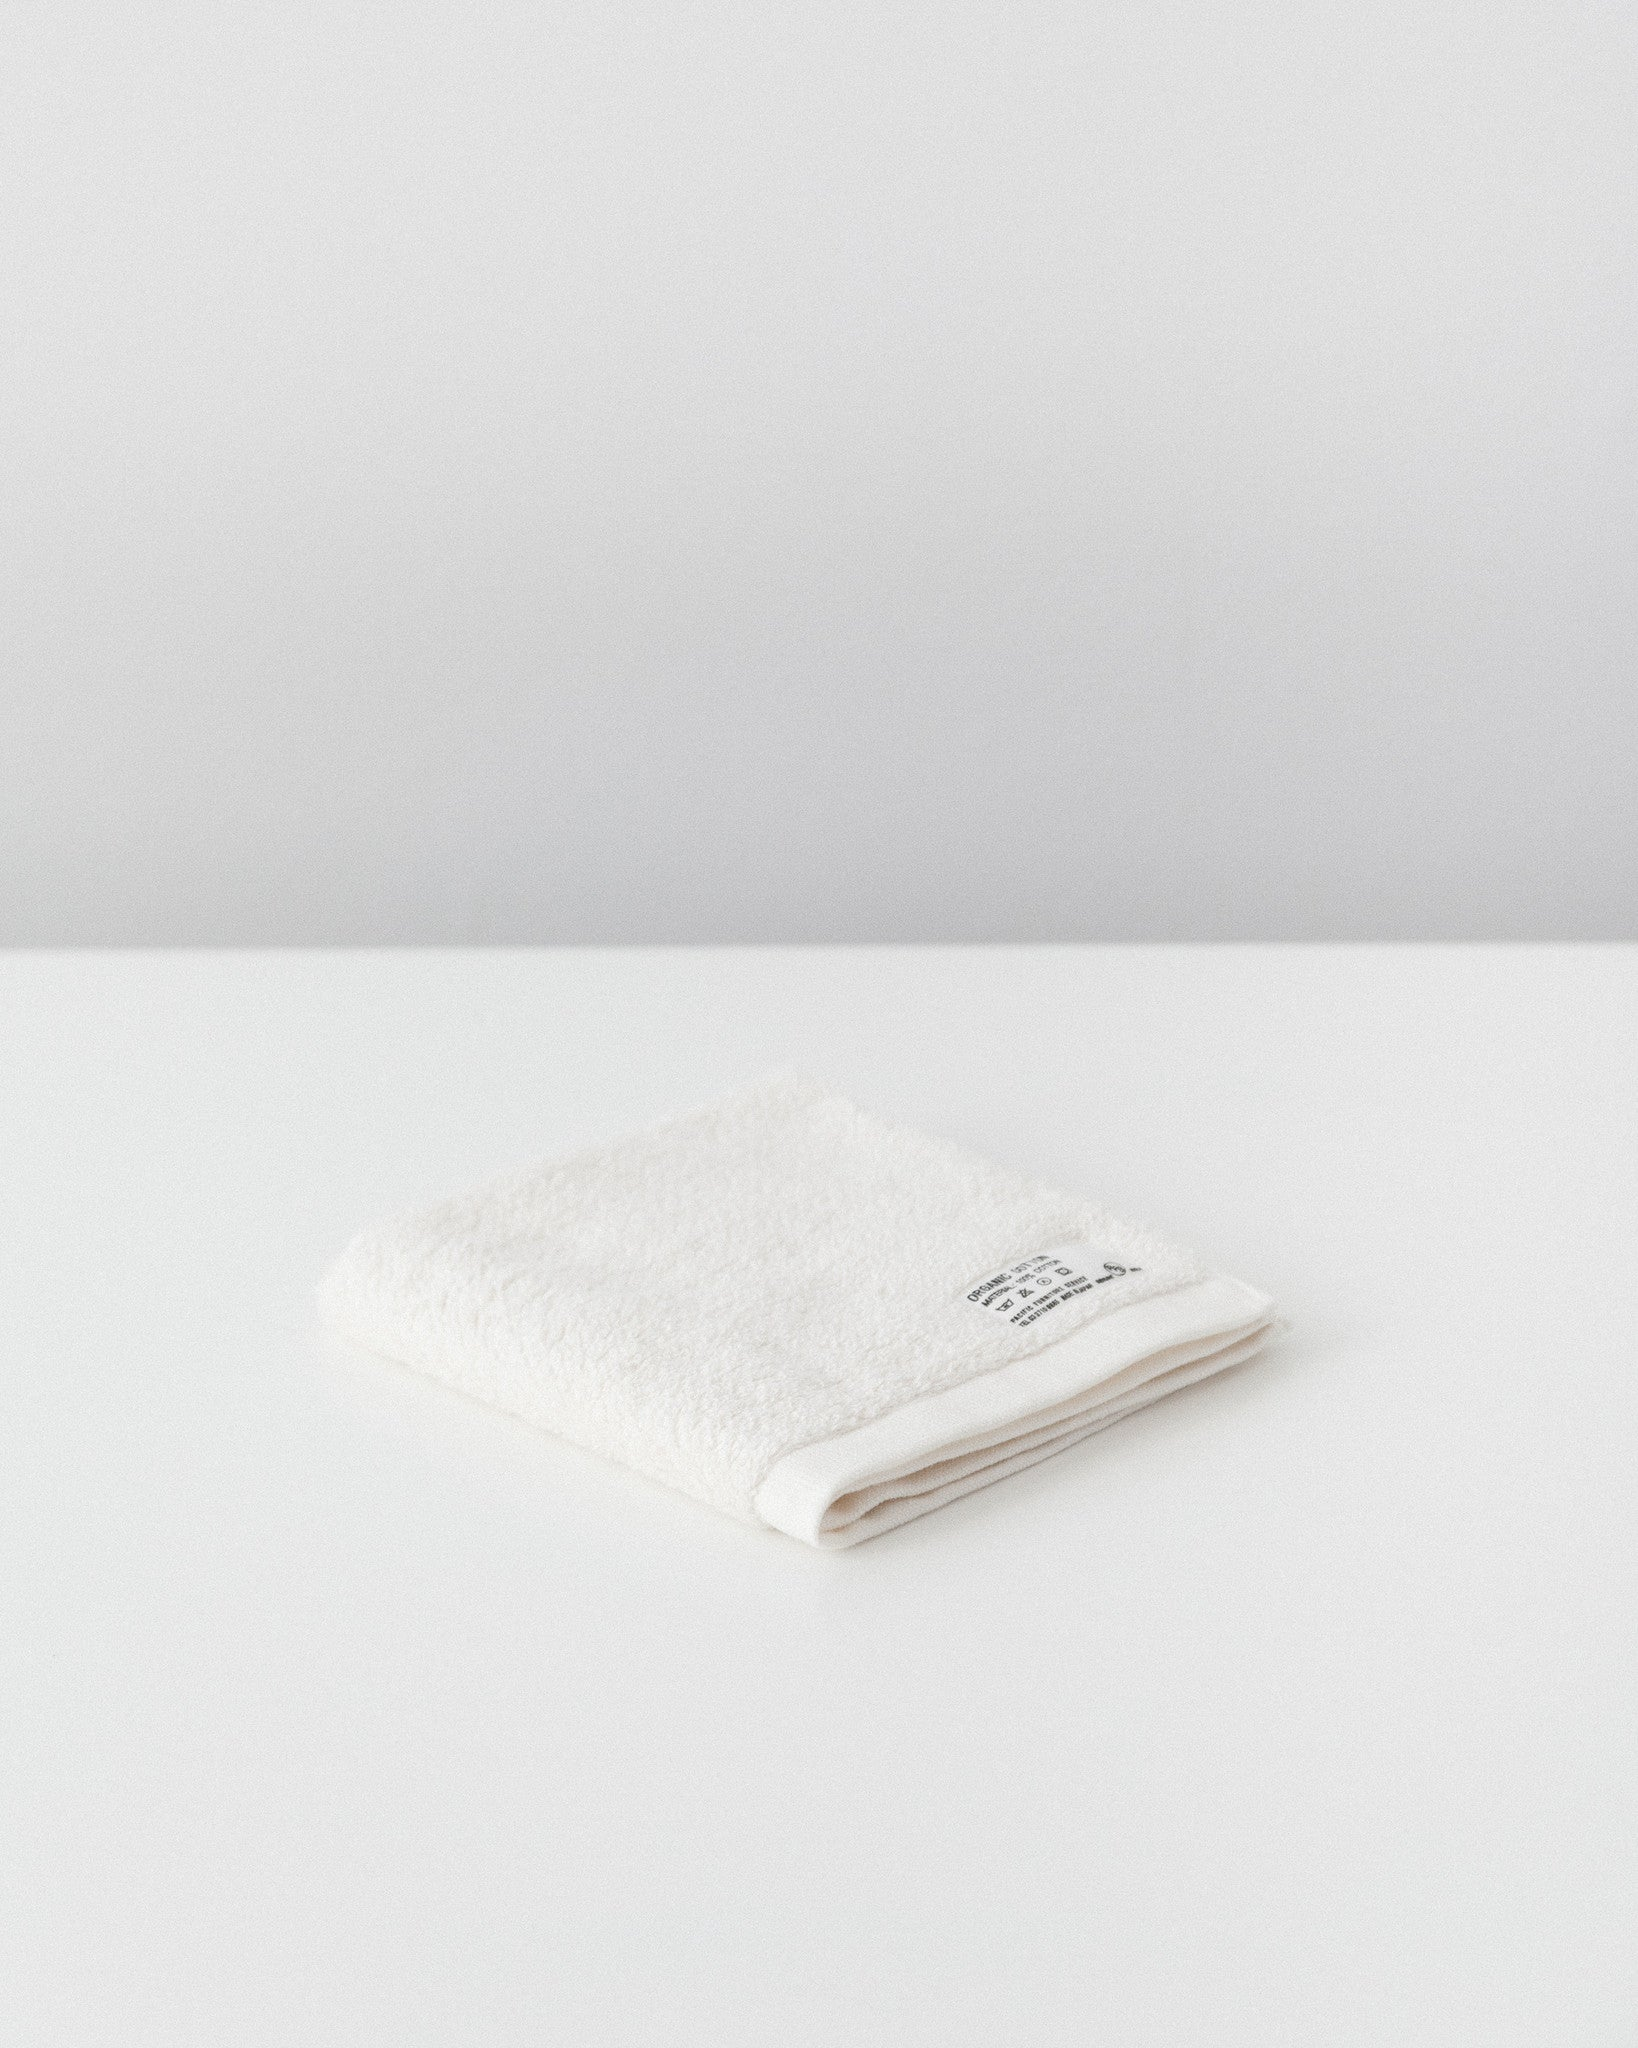 Pacific Furniture Service - Organic Cotton Wash Towel - Vanilla White